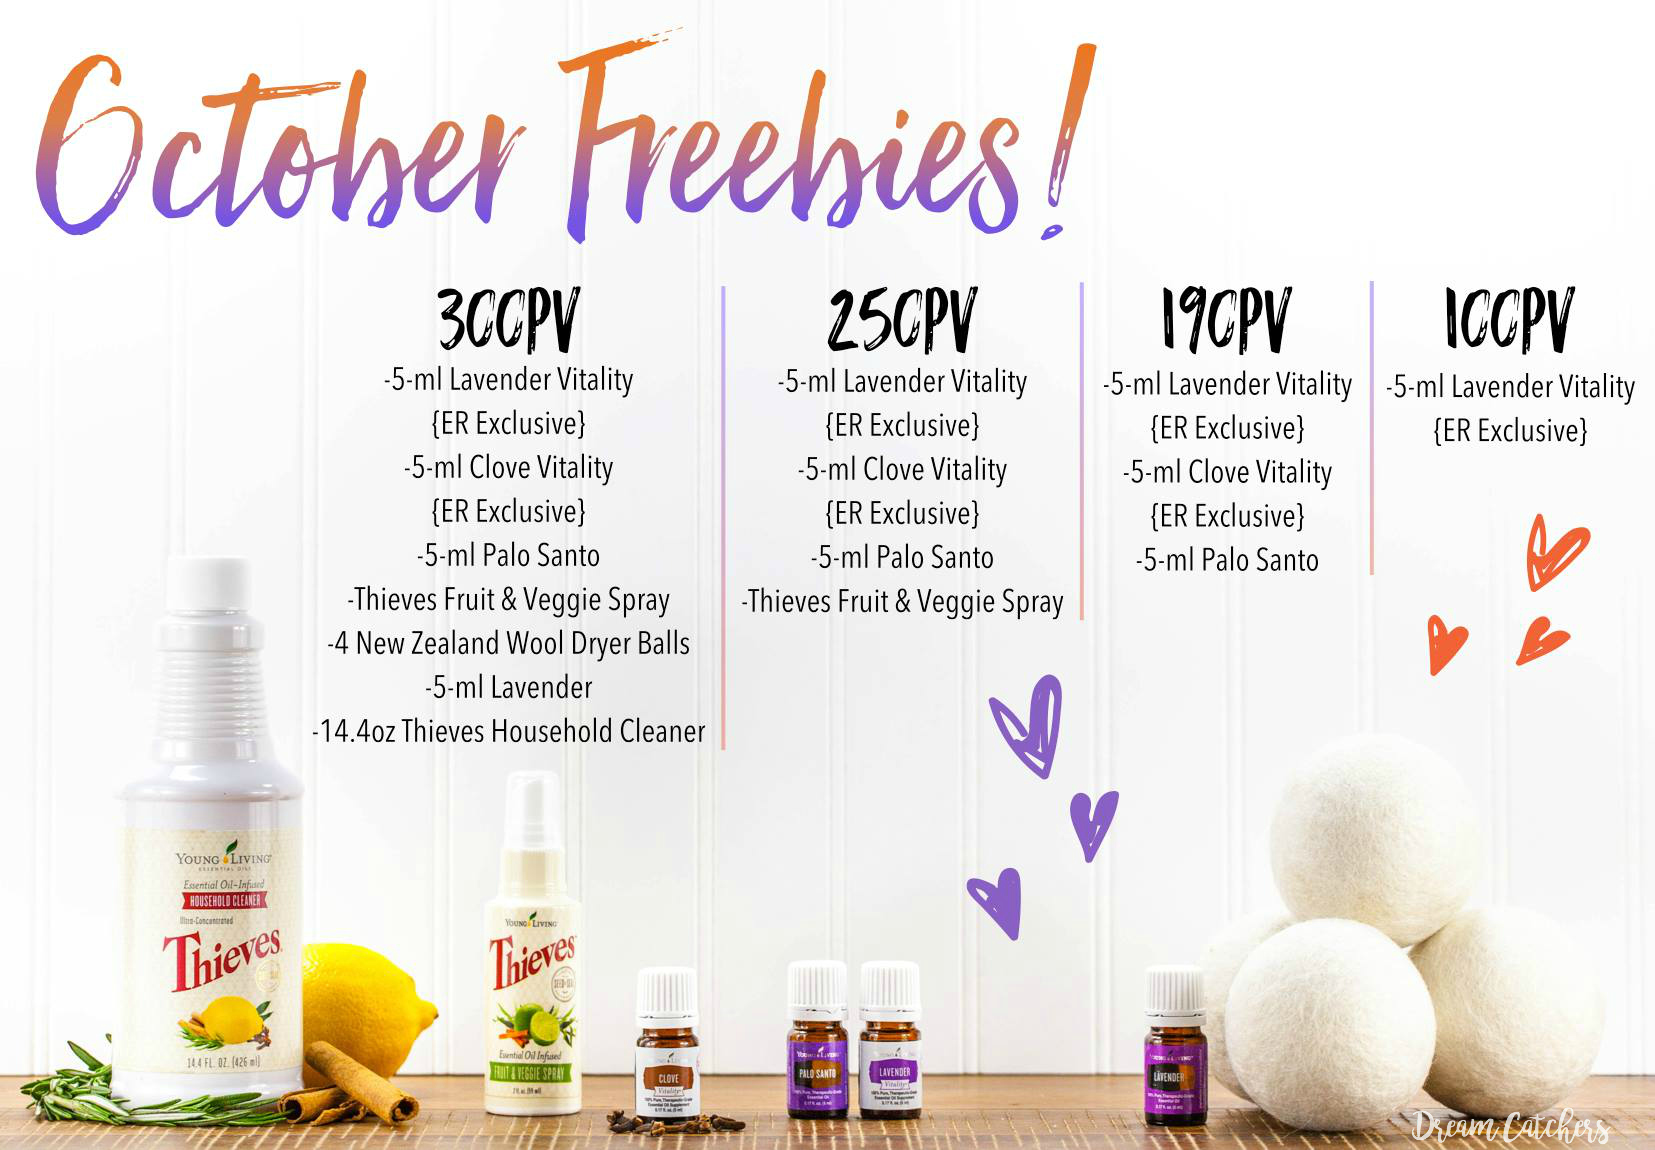 October Promotion from Young Living | Decorchick!®